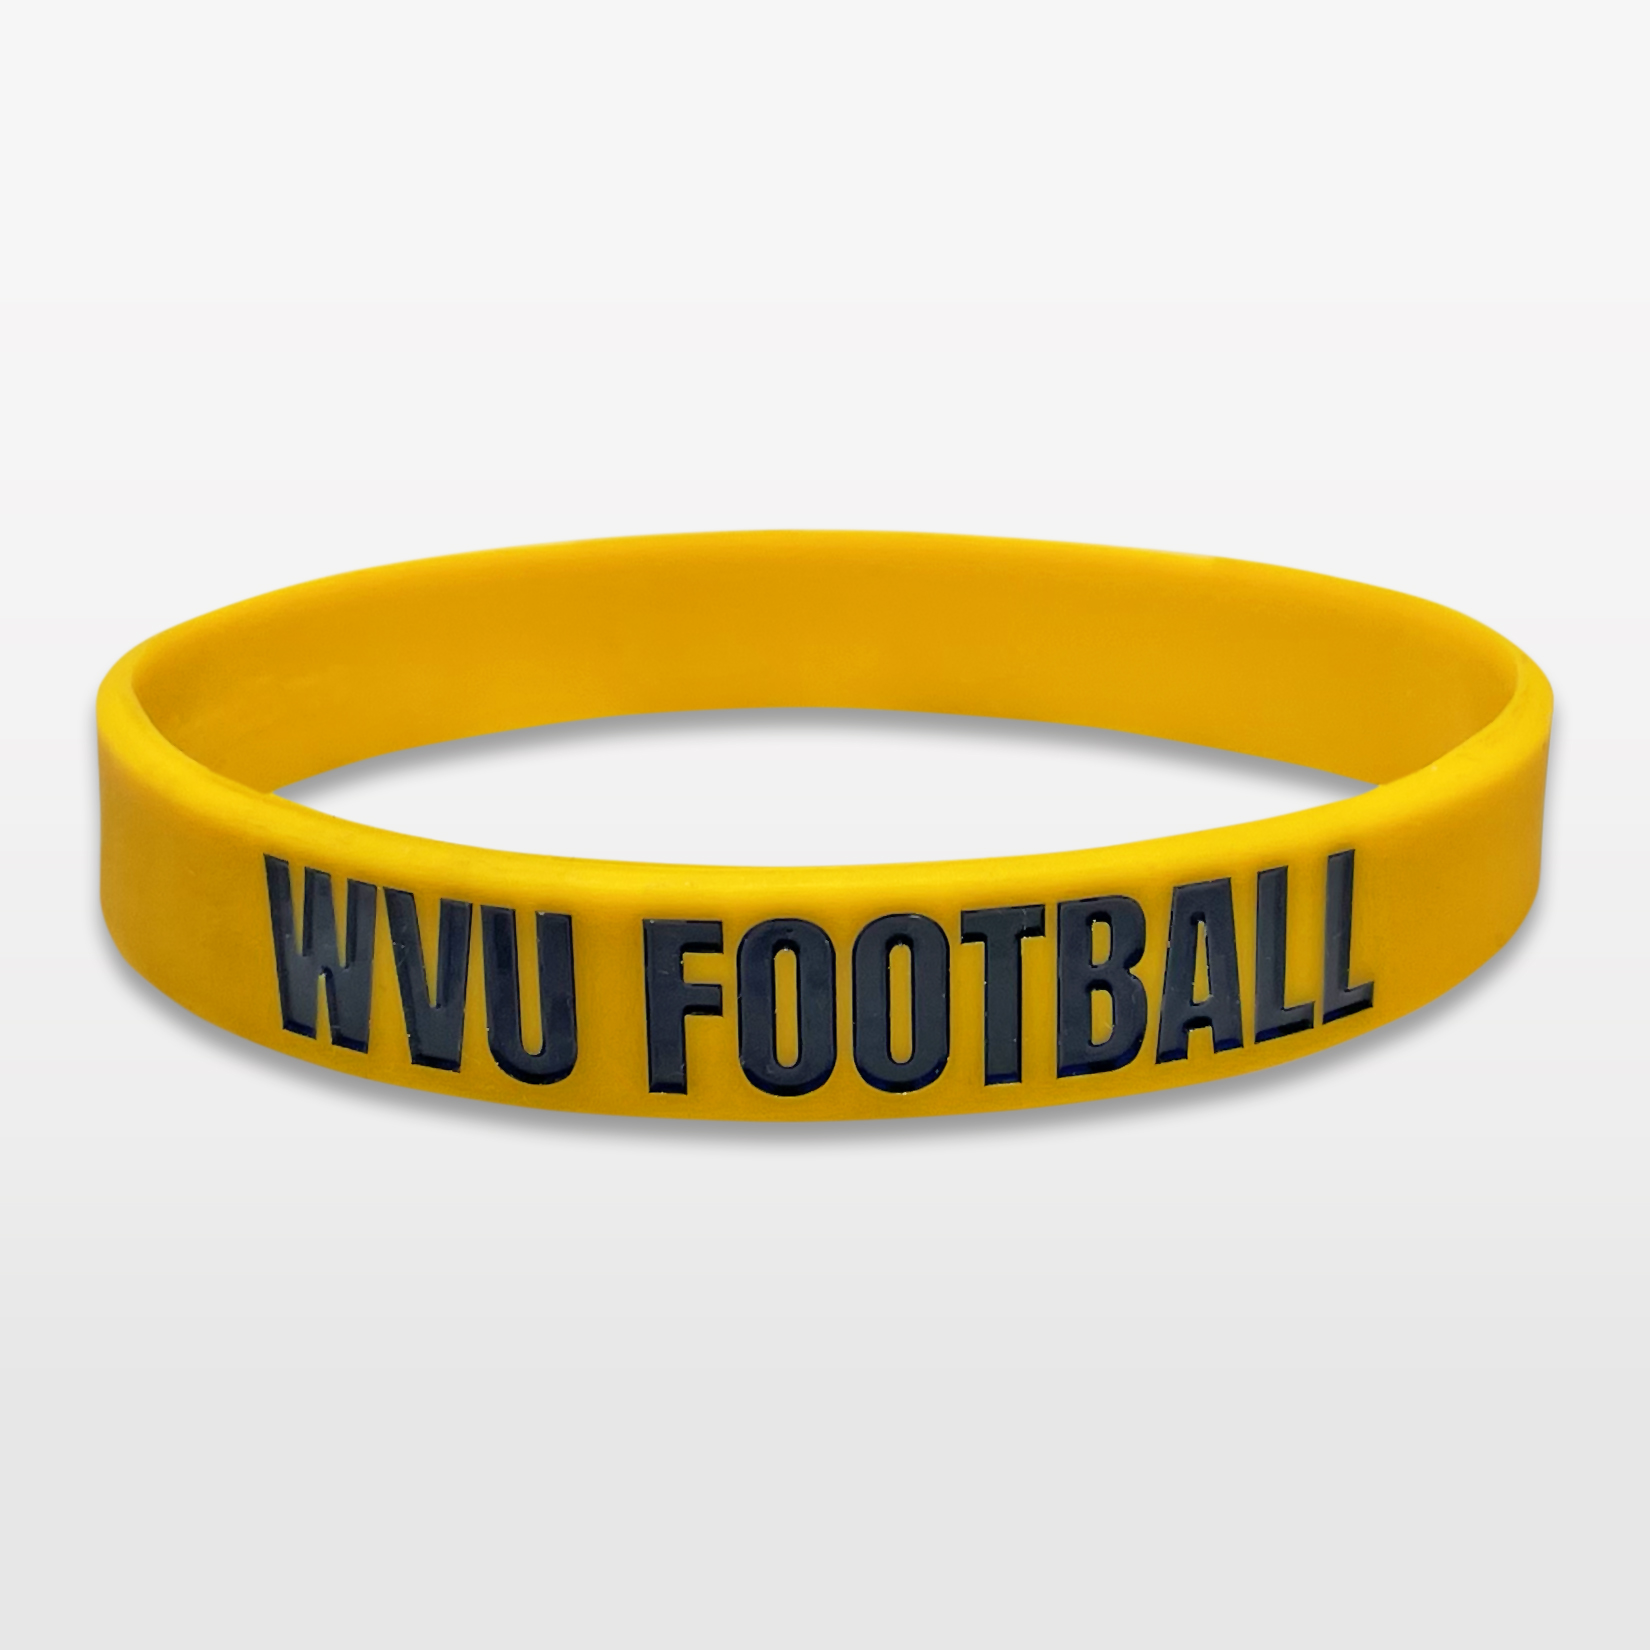 WVU Football Classic Silicone Wristband custom made for a customer